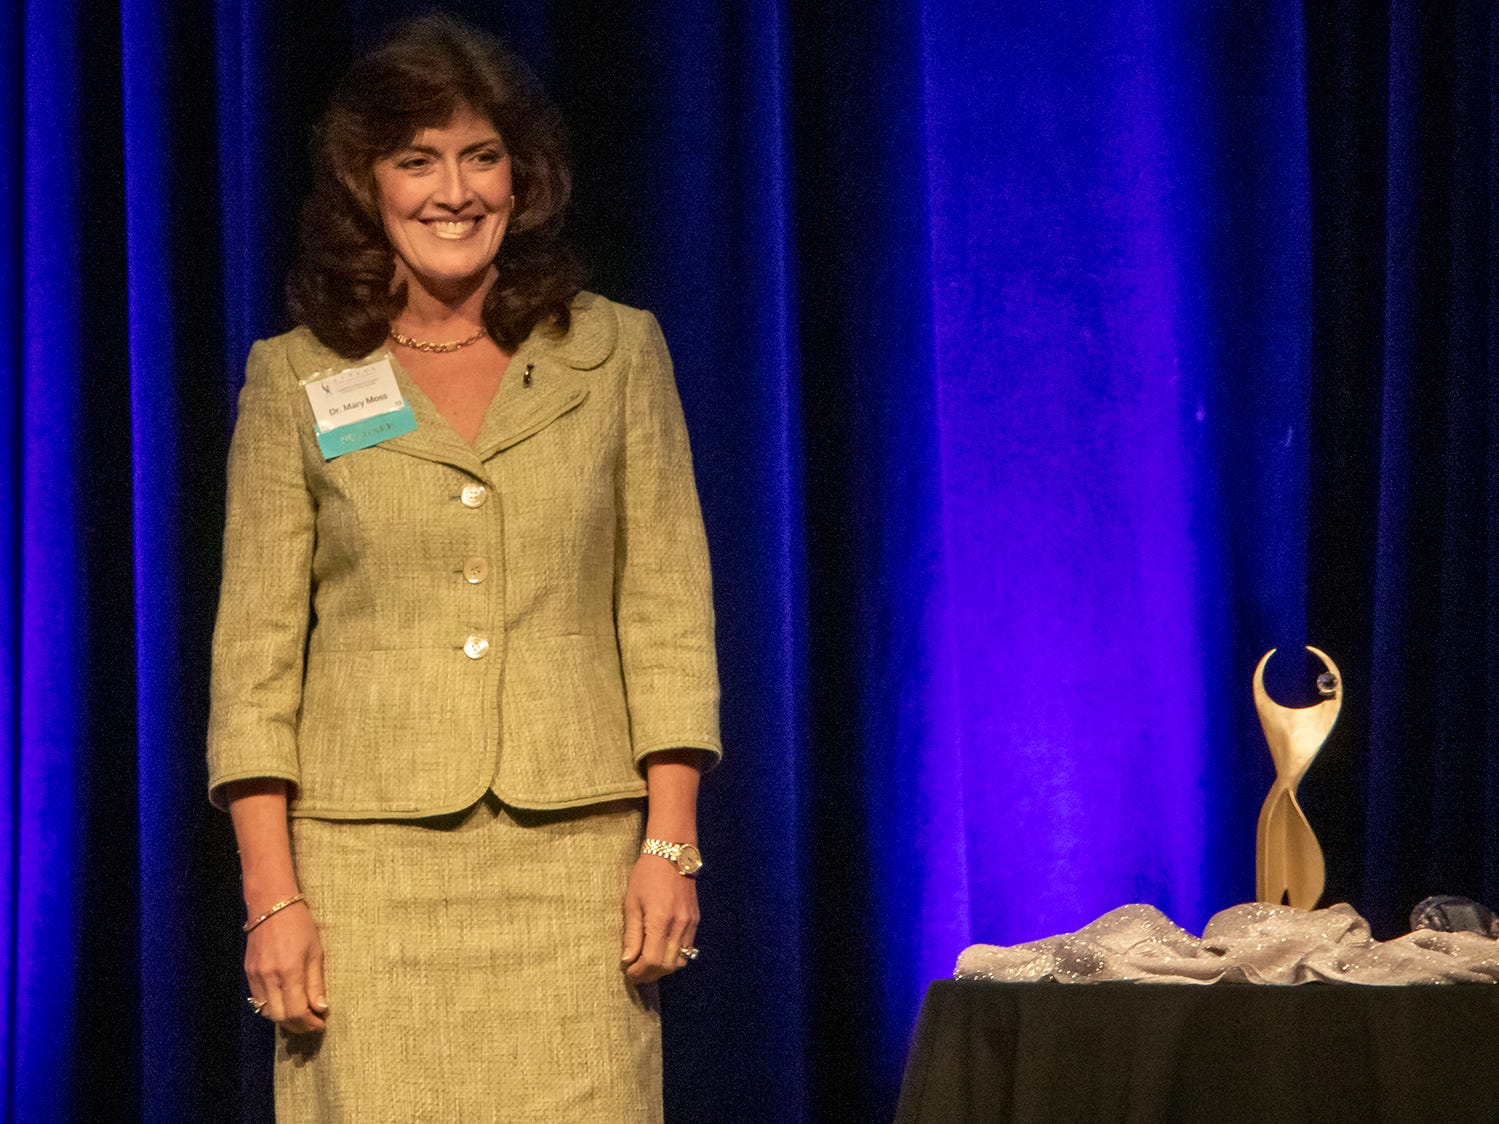 Dr. Mary Moss was nominated for the annual ATHENA Leadership Awards, hosted by Rutherford Cable on Friday, April 12, 2019 at Embassy Suites Murfreesboro.